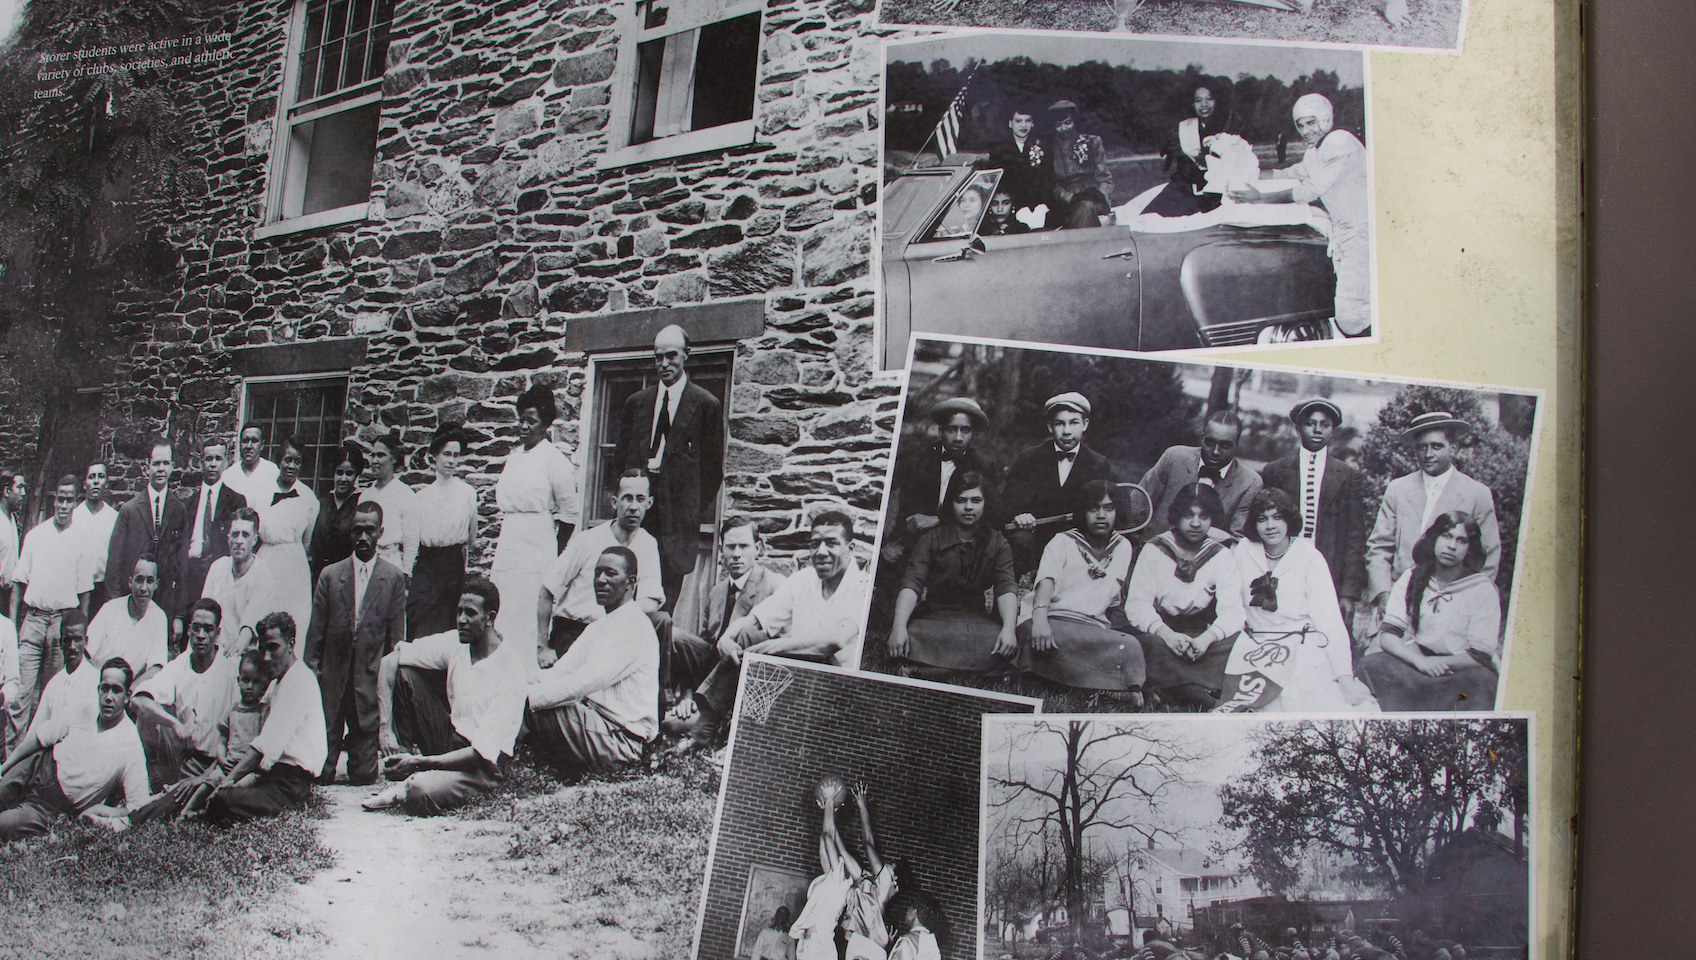 32. Storer College historical marker enlarged to see students  (Photo by G. Maurice Ballard)